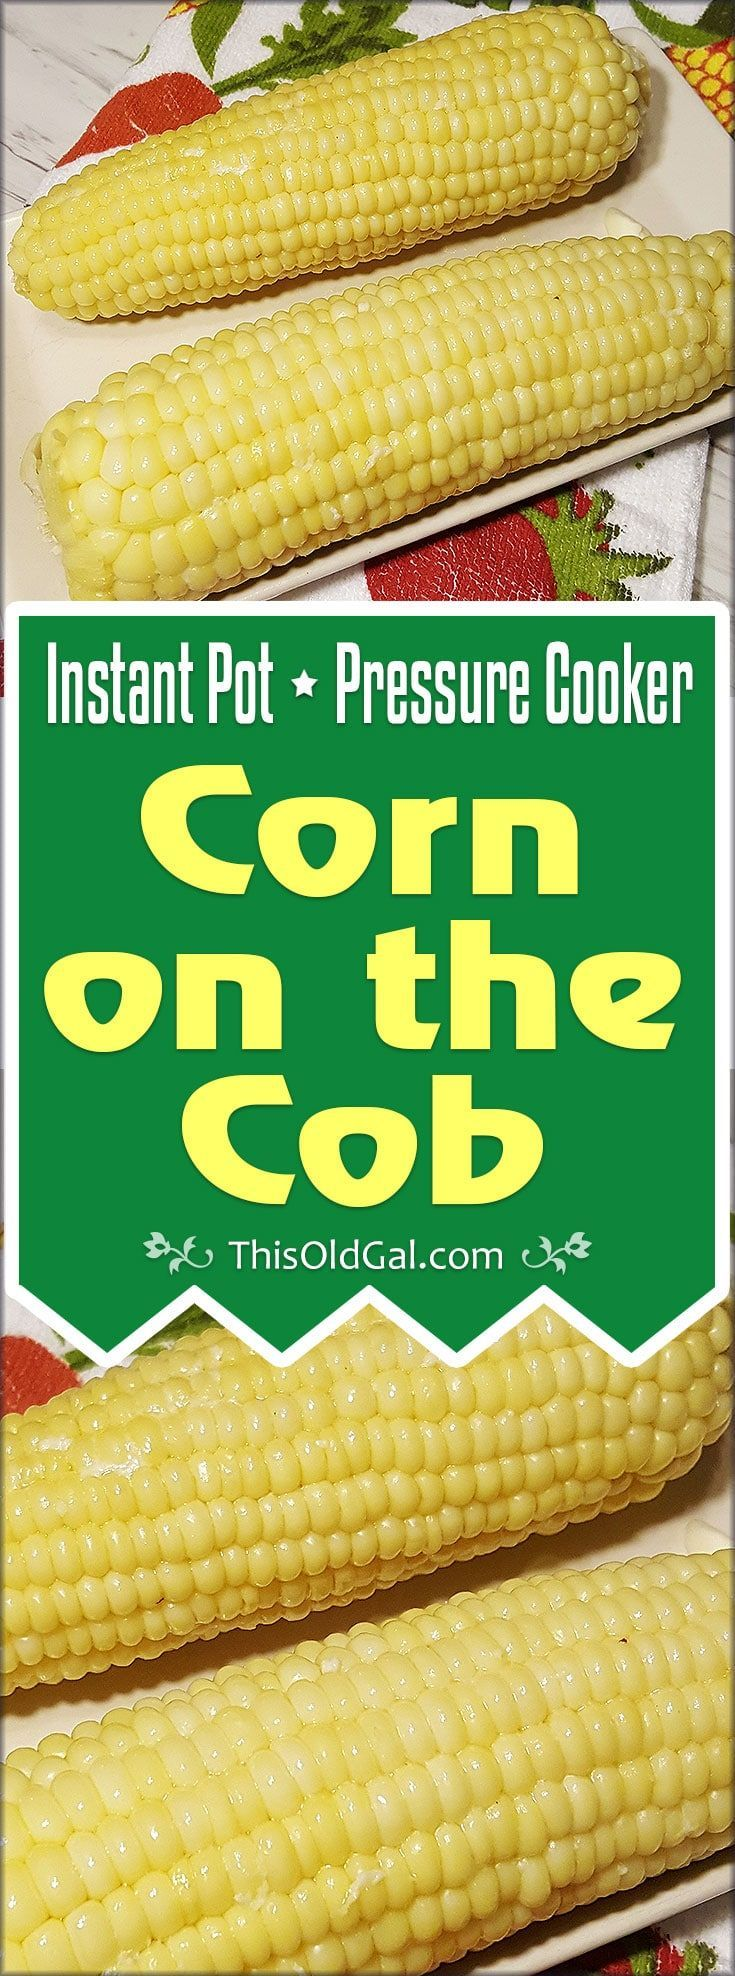 Instant Pot Pressure Cooker Corn on the Cob can be made on a steamer rack, or in the pot with butter, milk and salt, for a buttery infused flavor. via @thisoldgalcooks